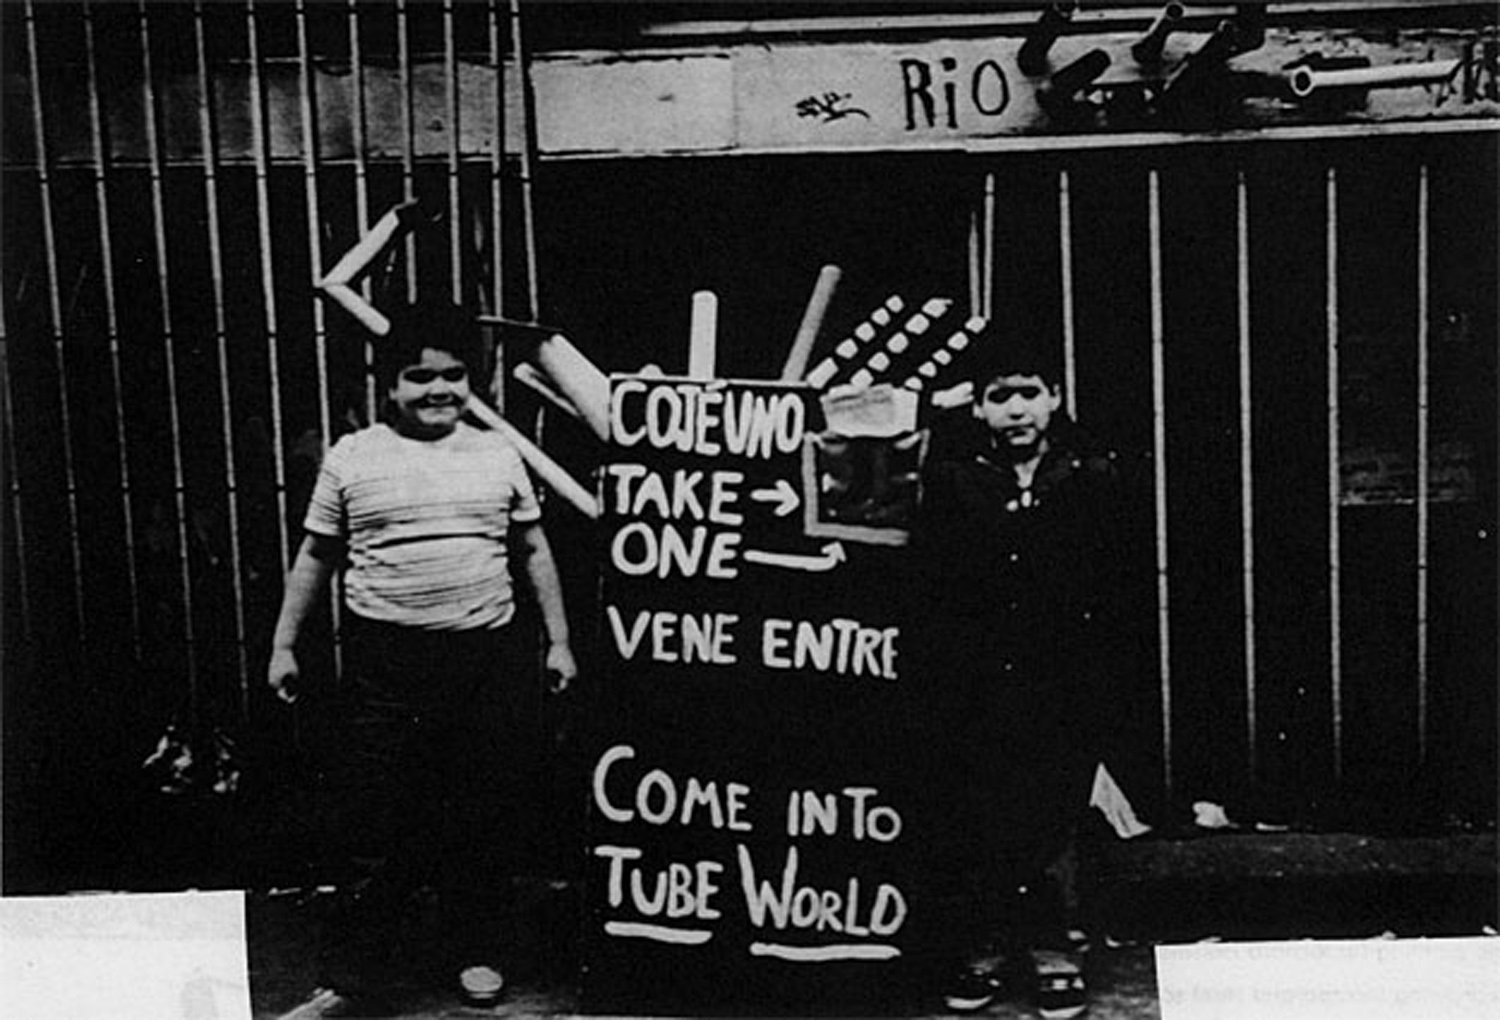 Local children Maria Acosta and friend stand by the Tube World signboard in front of No Rio, 1982. Photo by Jody Culkin